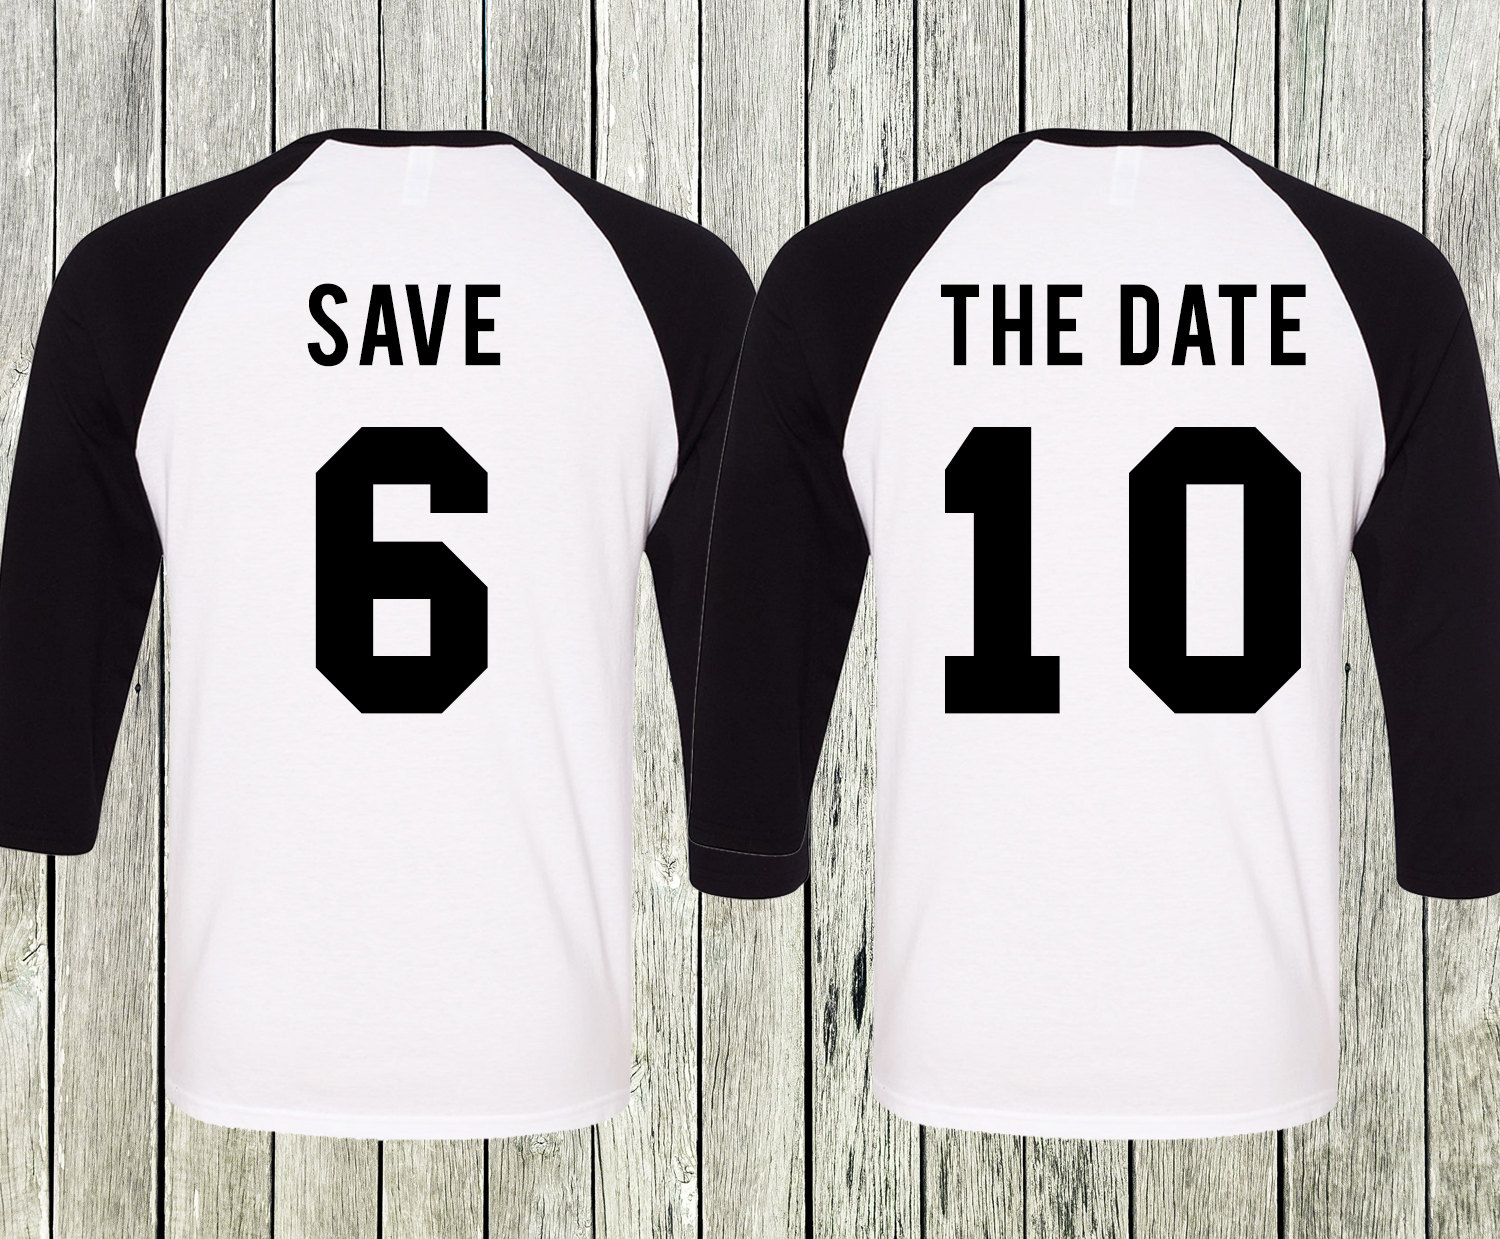 Bride & Groom - Texas personalized with date - two shirts - GC p86RQQn1sl